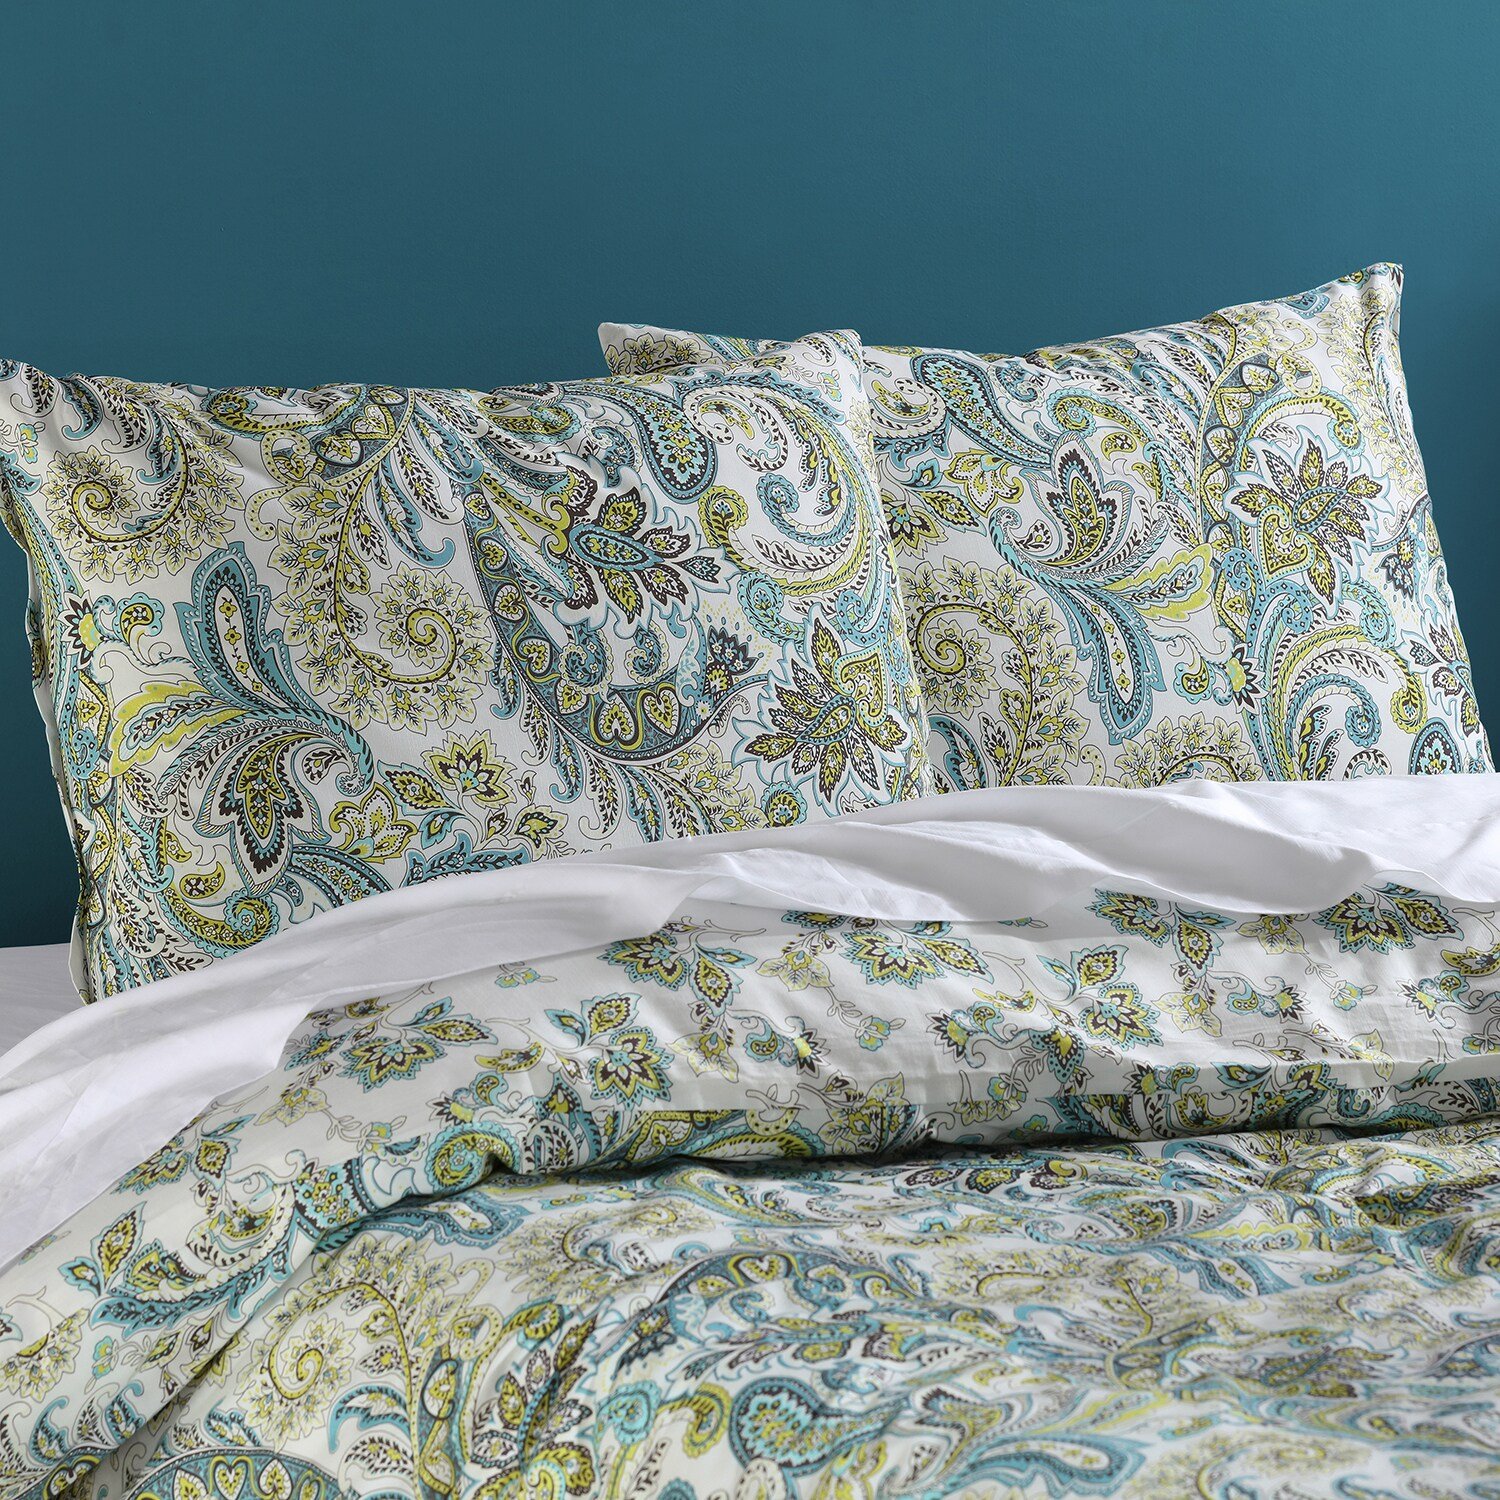 Spindrift Teal and Yellow Cotton Percale Printed Reversible Duvet Cover Set